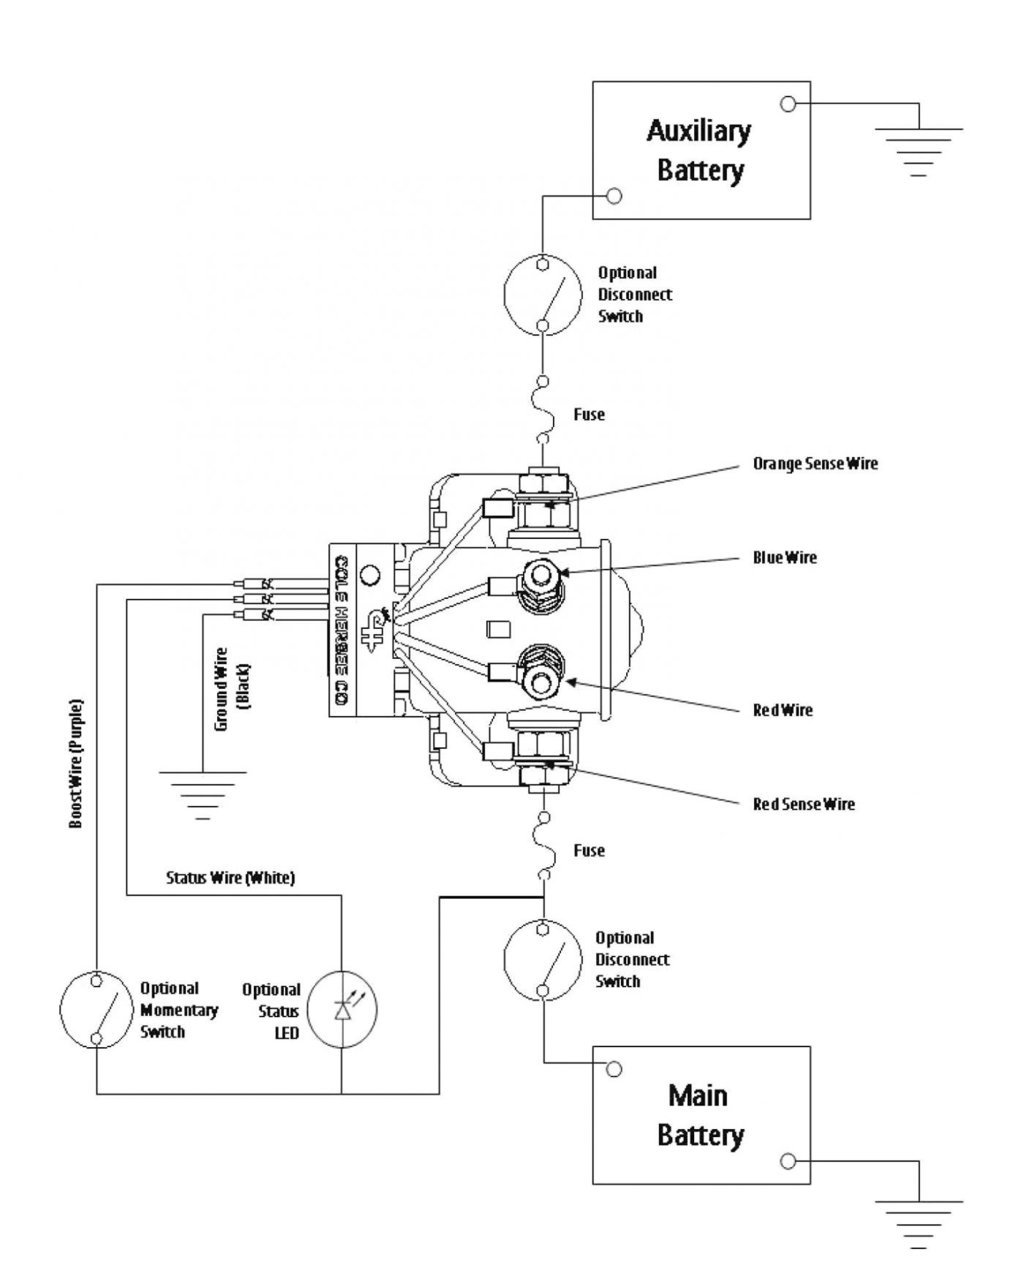 guest dual battery switch wiring diagram dual battery for under  400 tacoma world  dual battery for under  400 tacoma world